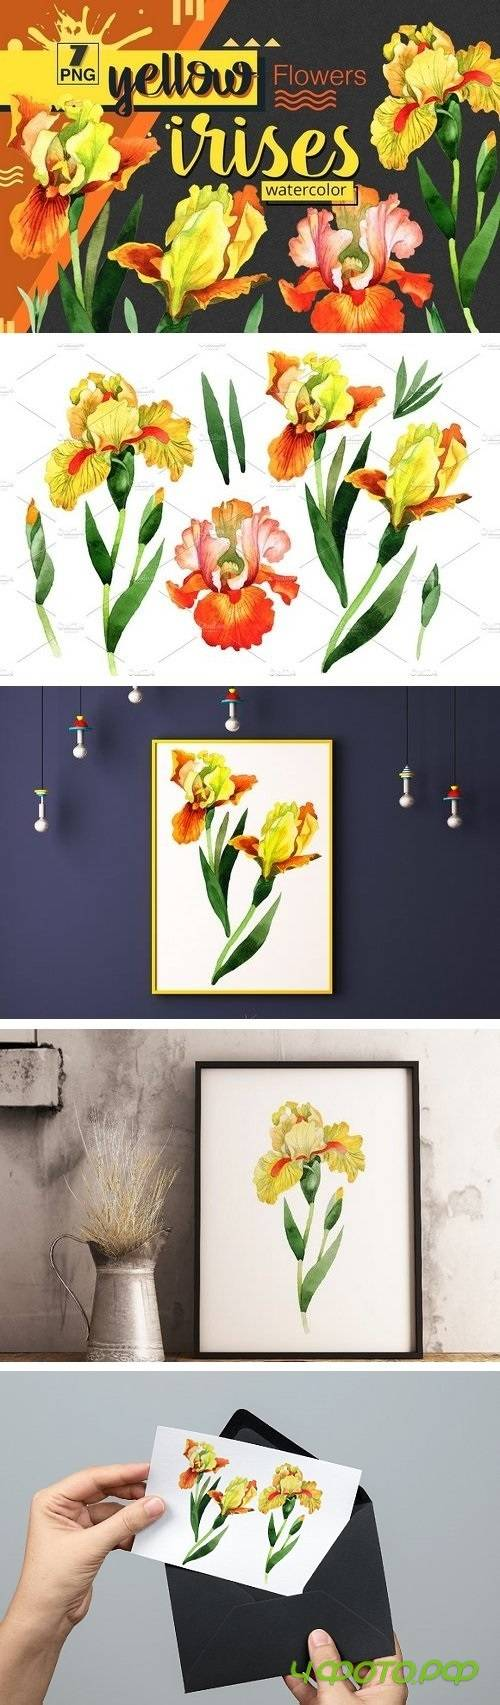 Yellow irises watercolor PNG clipart - 1539921